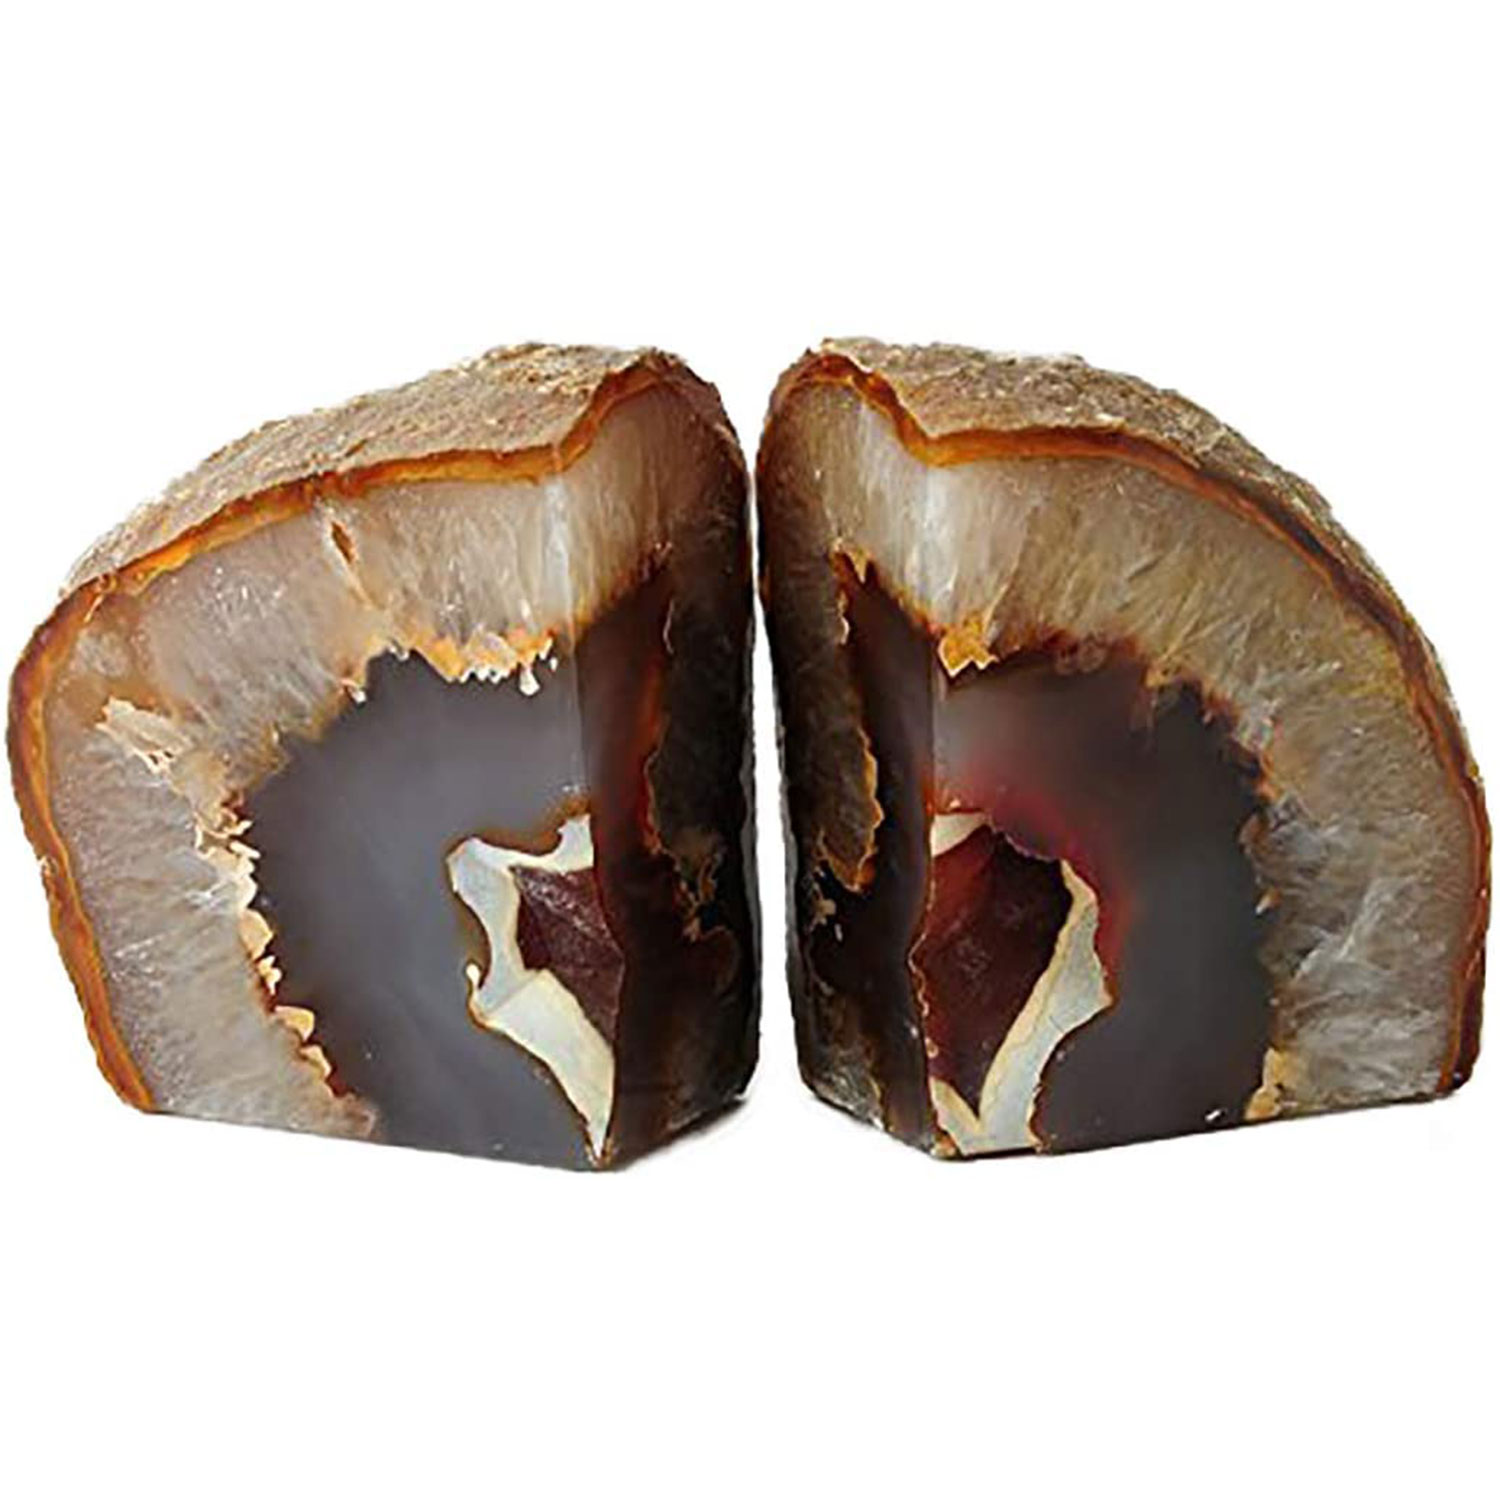 gem natural agate bookends office decor